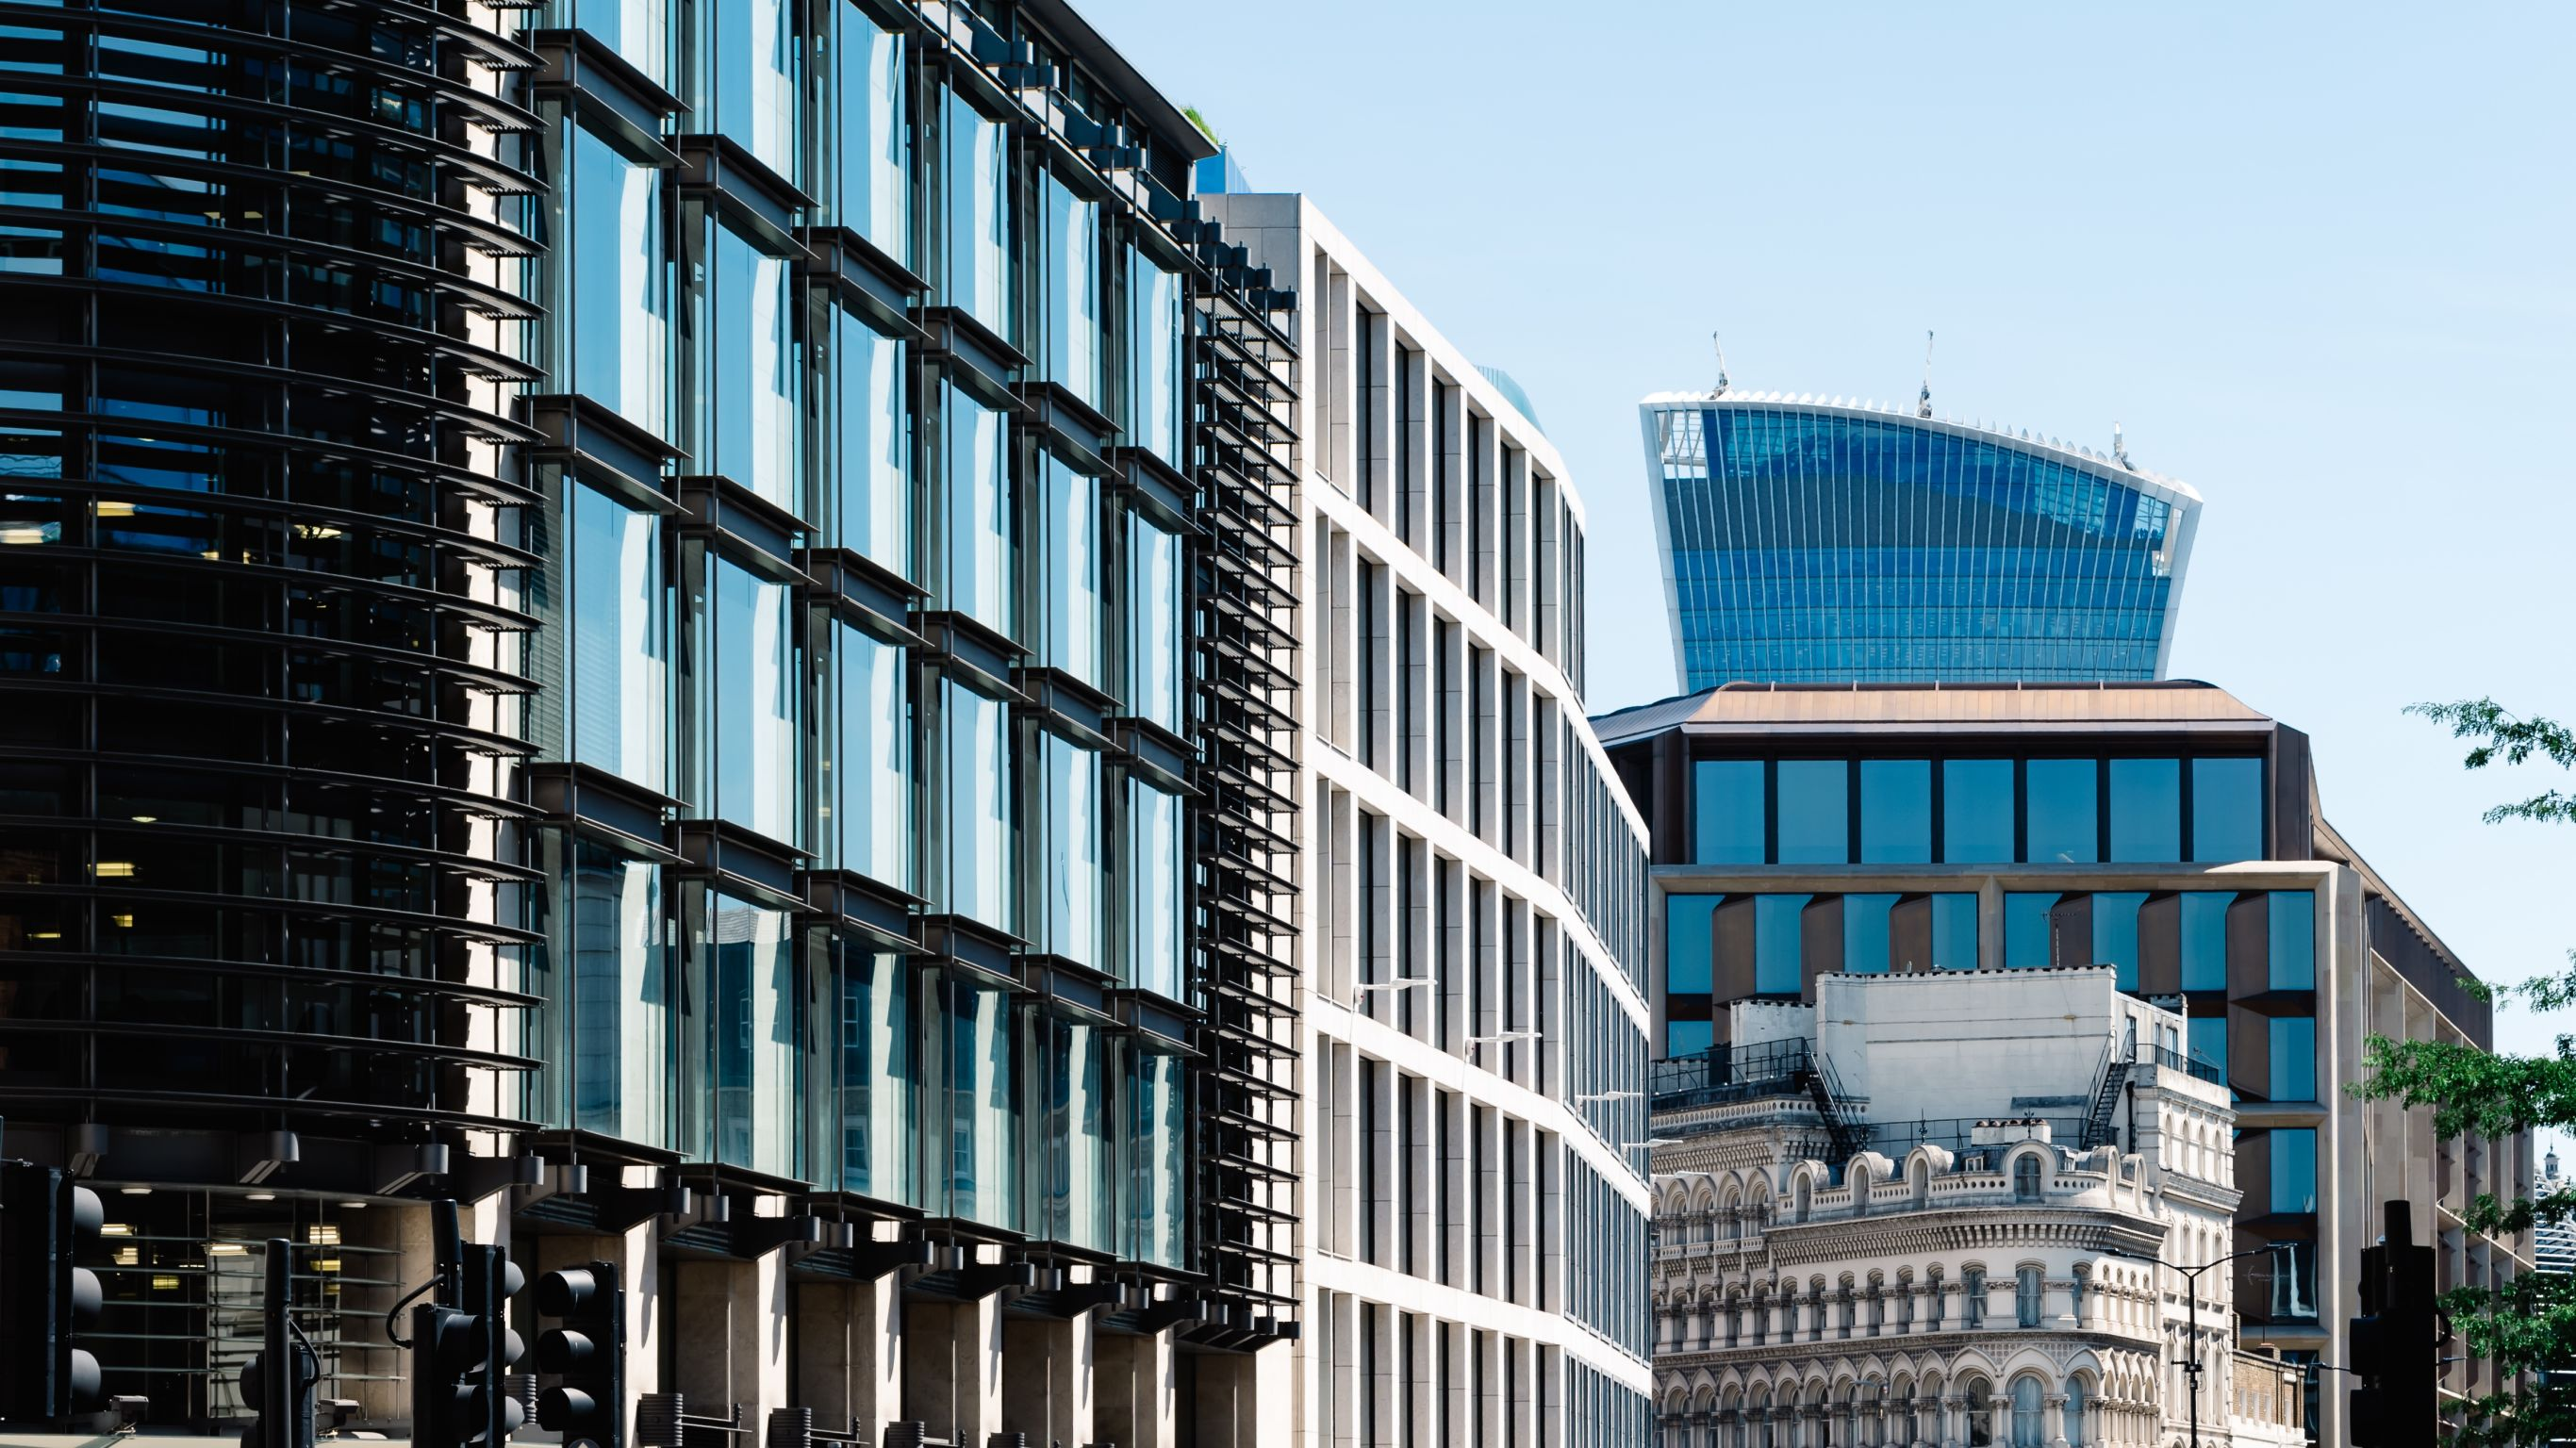 UK office buildings are wasting £60m of energy every year